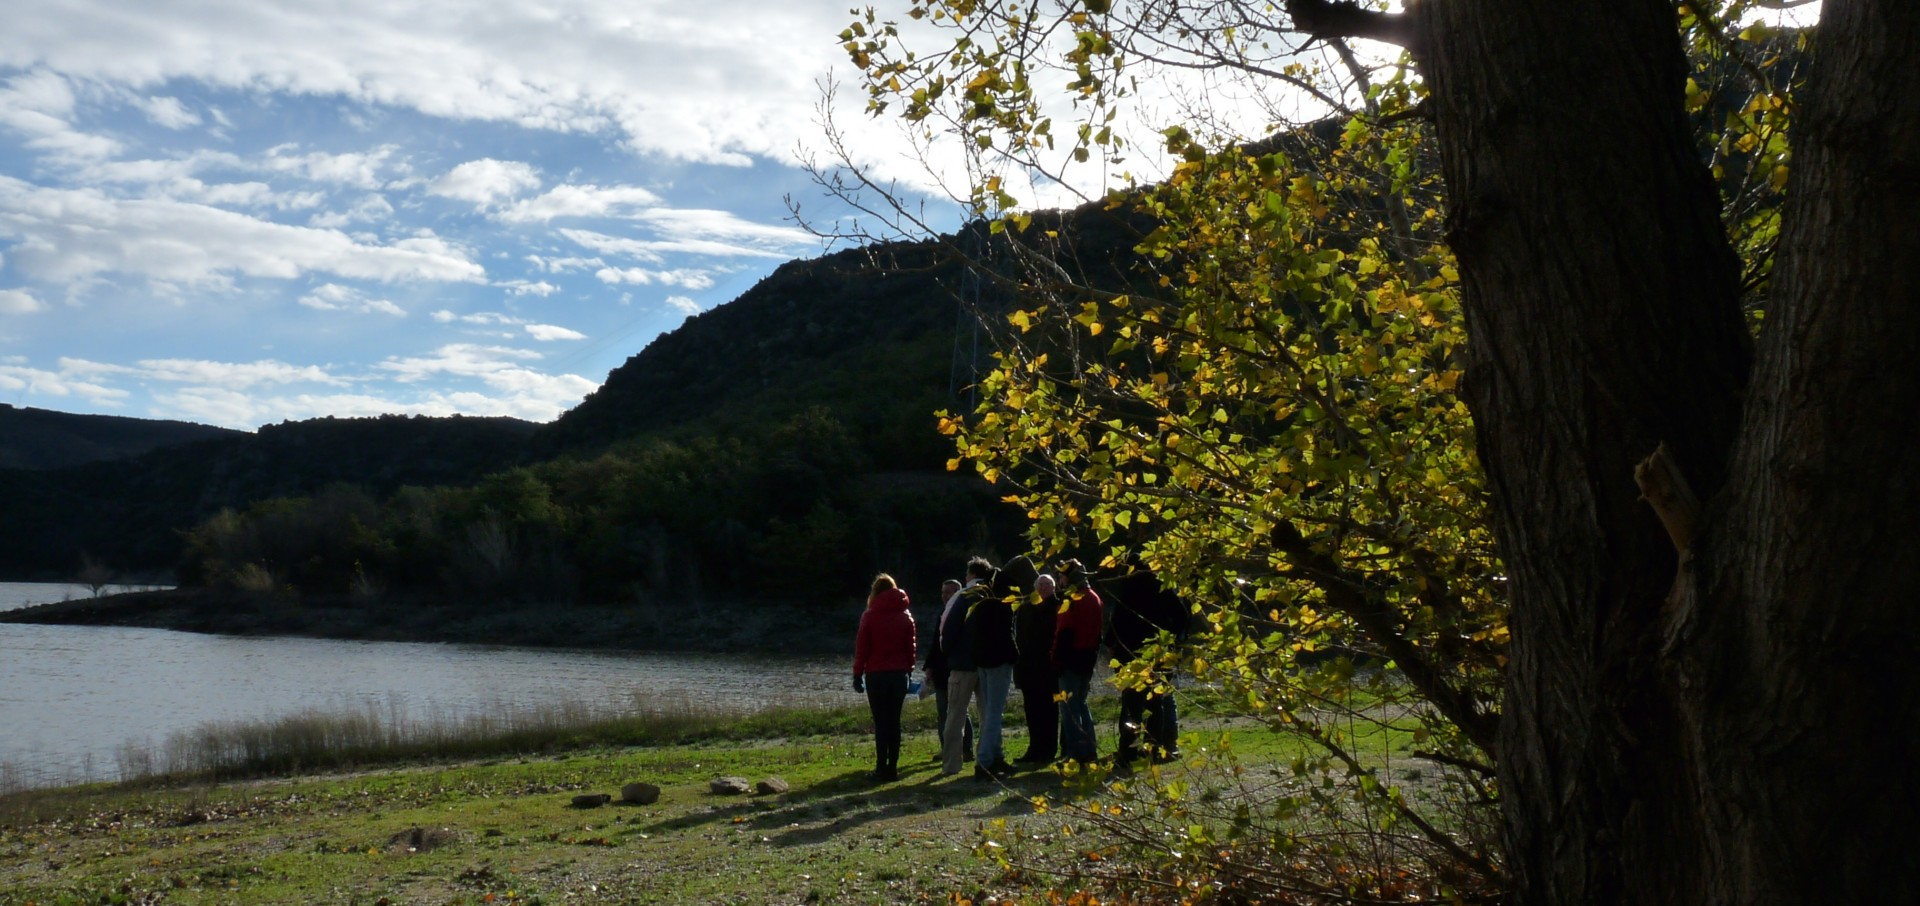 GREEN PYRENEES SLOW TOURISM, soustainable mobility project